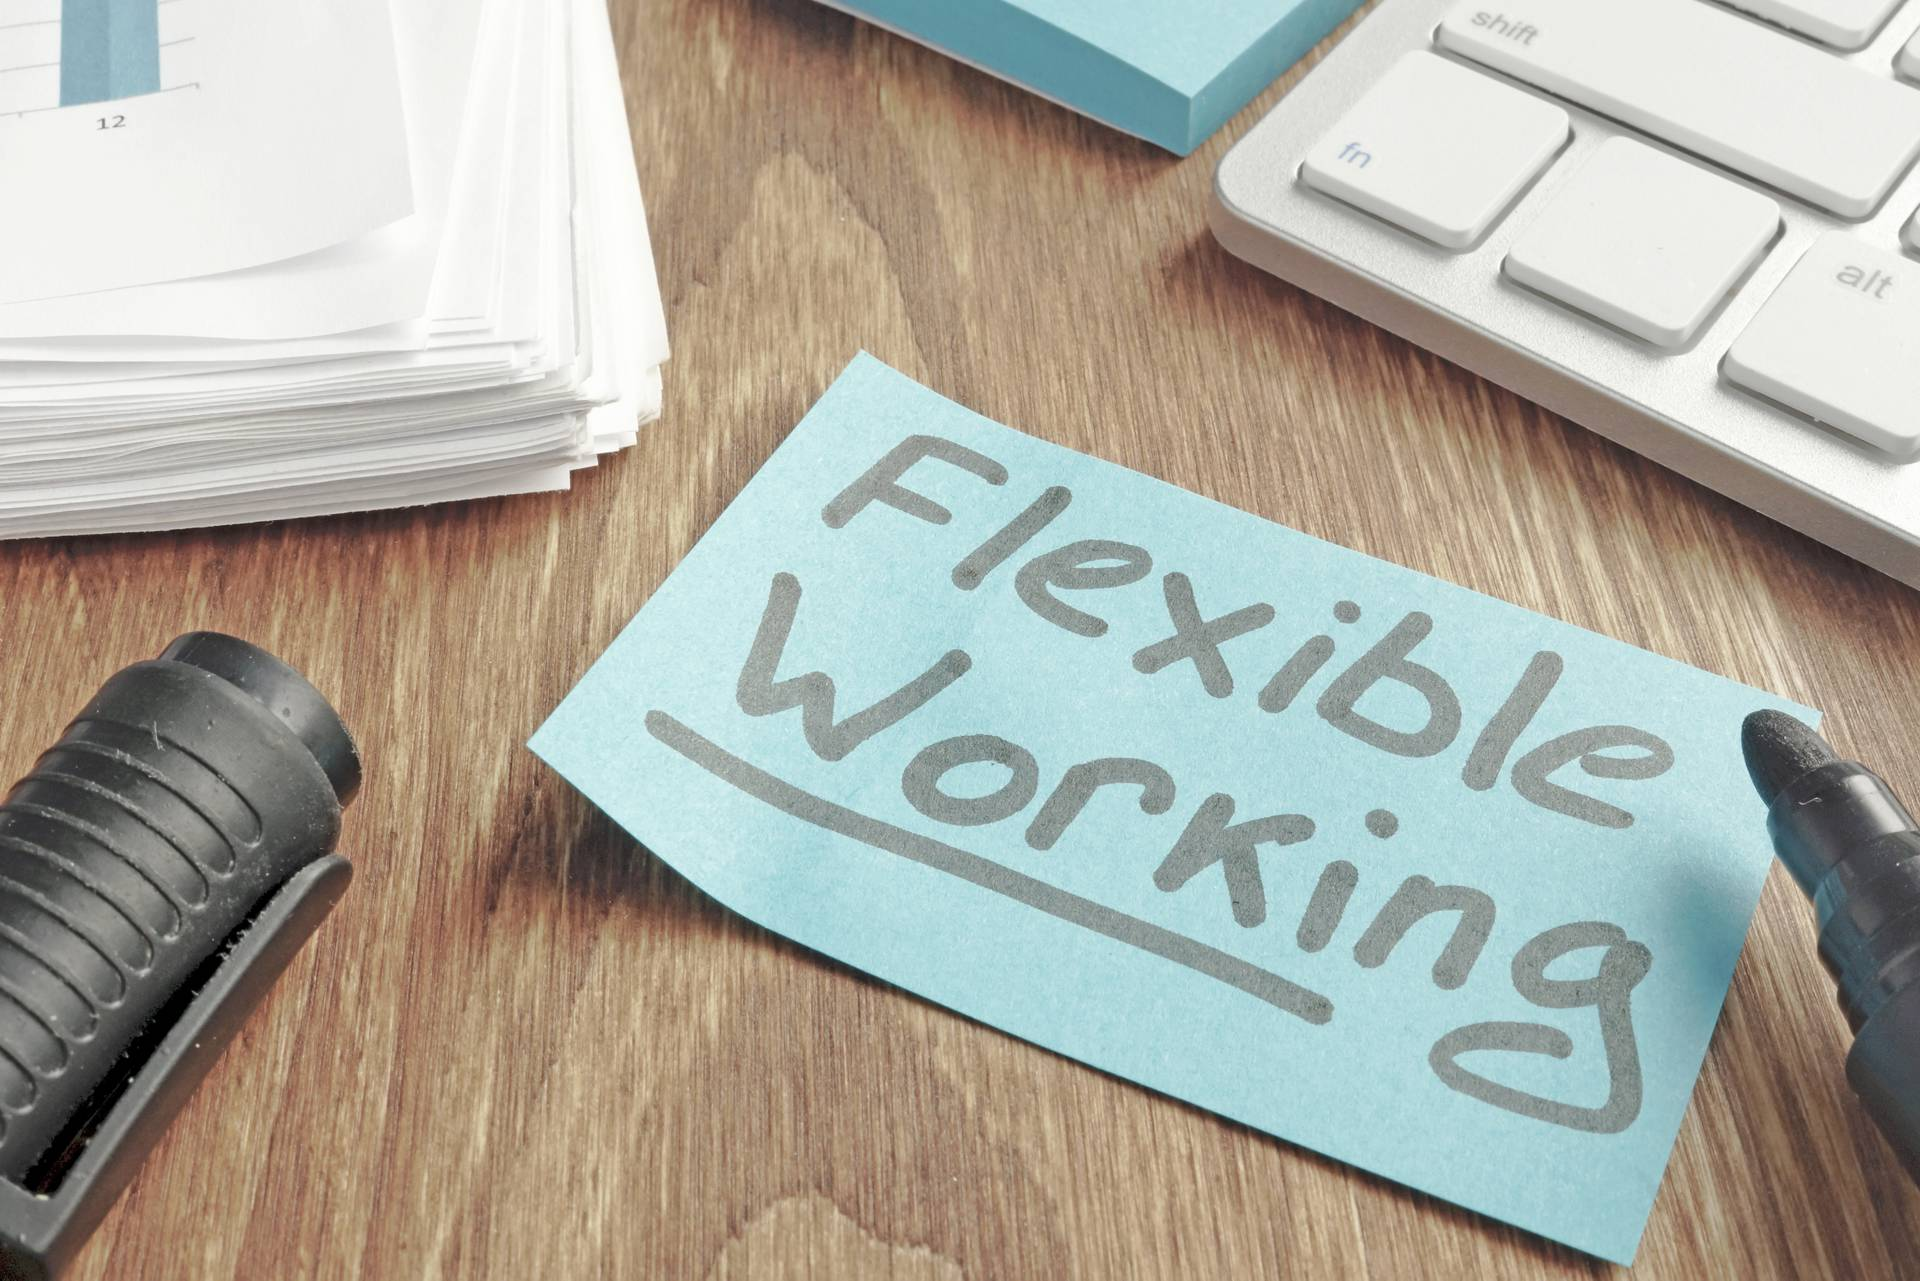 Flexible working to improve productivity